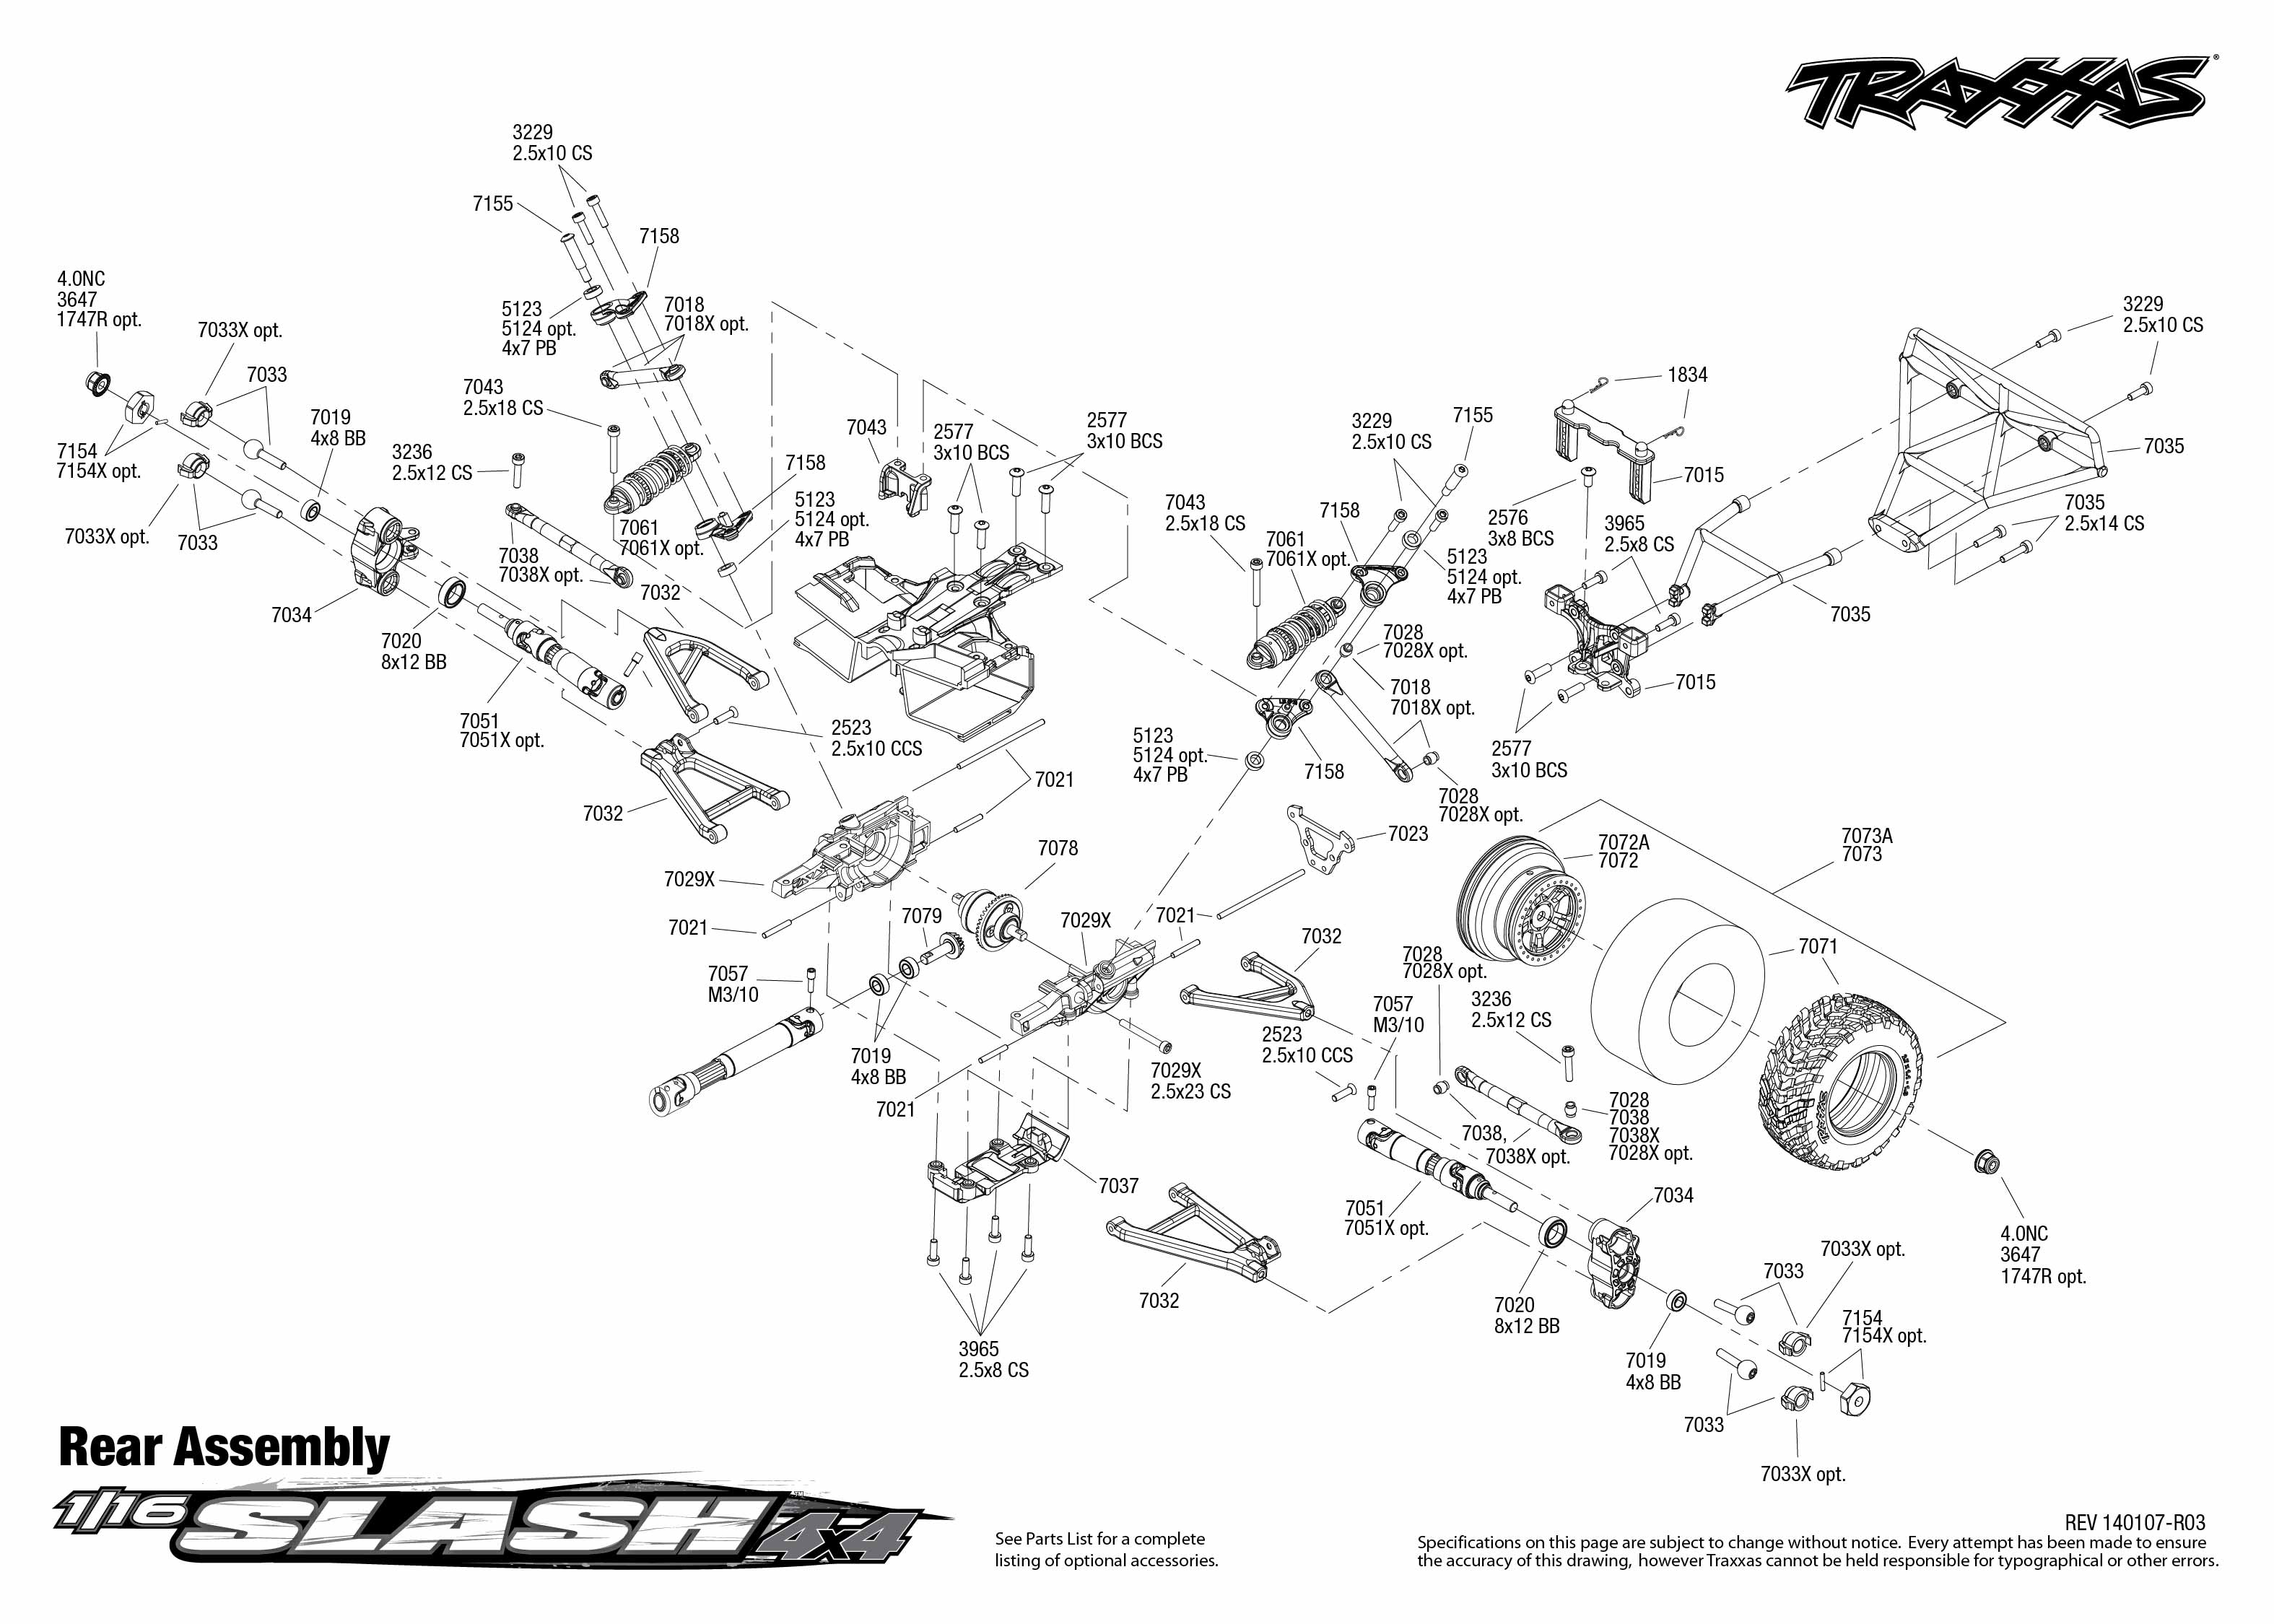 traxxas slash slipper clutch diagram traxxas slipper clutch adjustment   elsavadorla traxxas slash 2wd parts list pdf traxxas slash 2wd parts diagram pdf